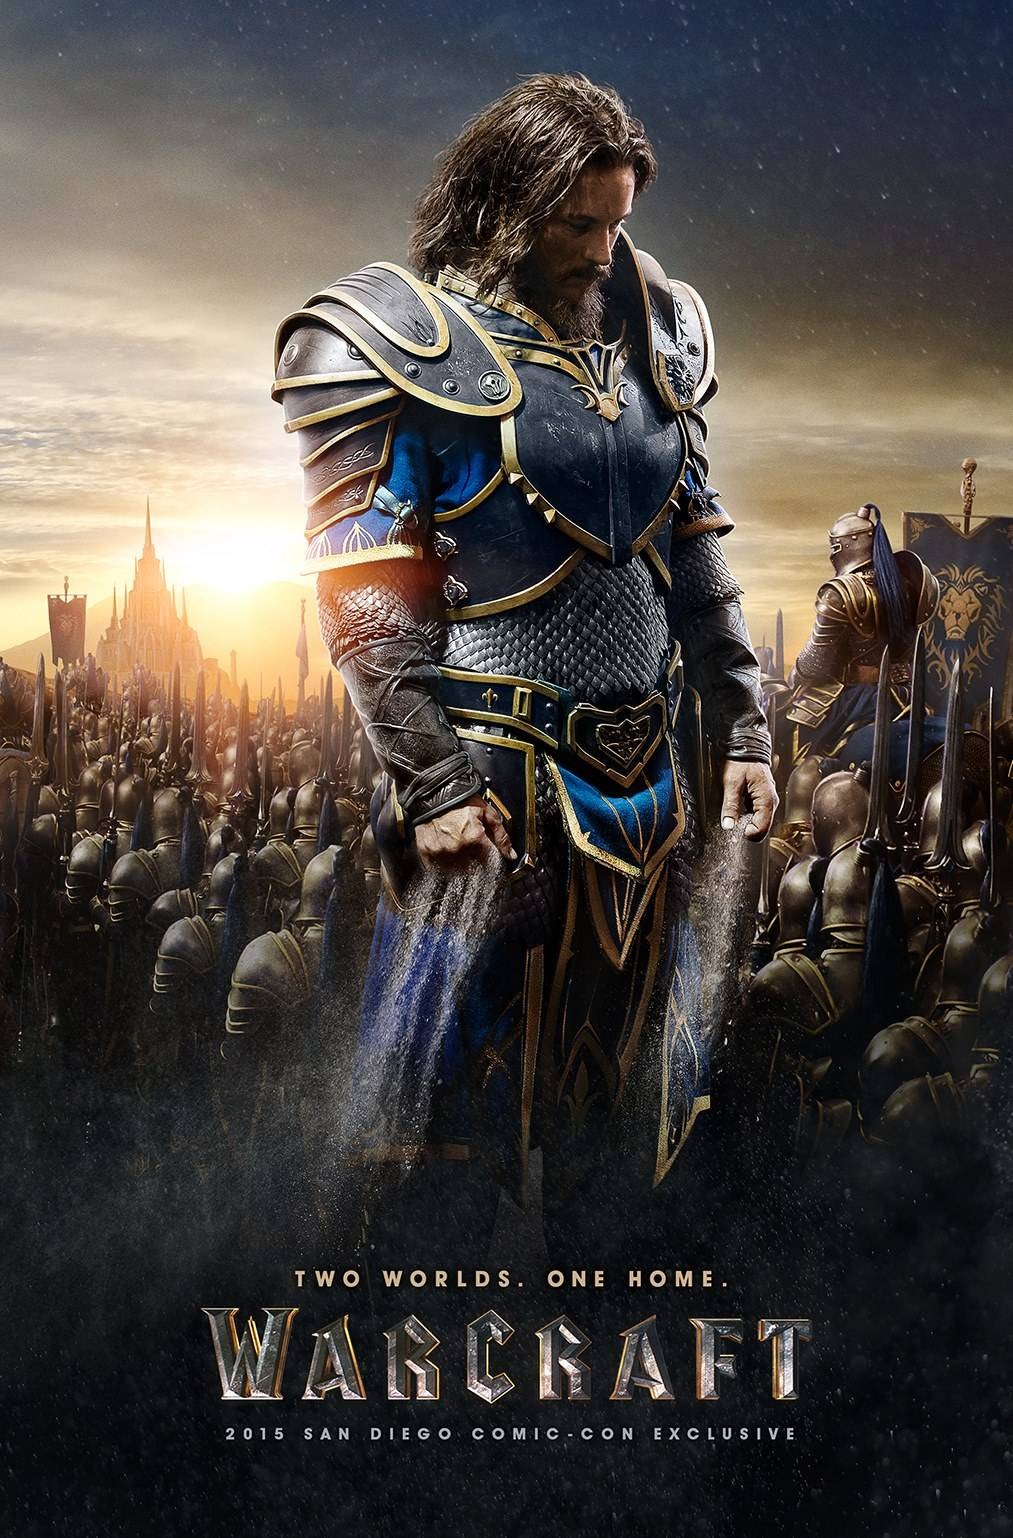 SDCC 2015 - Warcraft posters reveals look at main characters